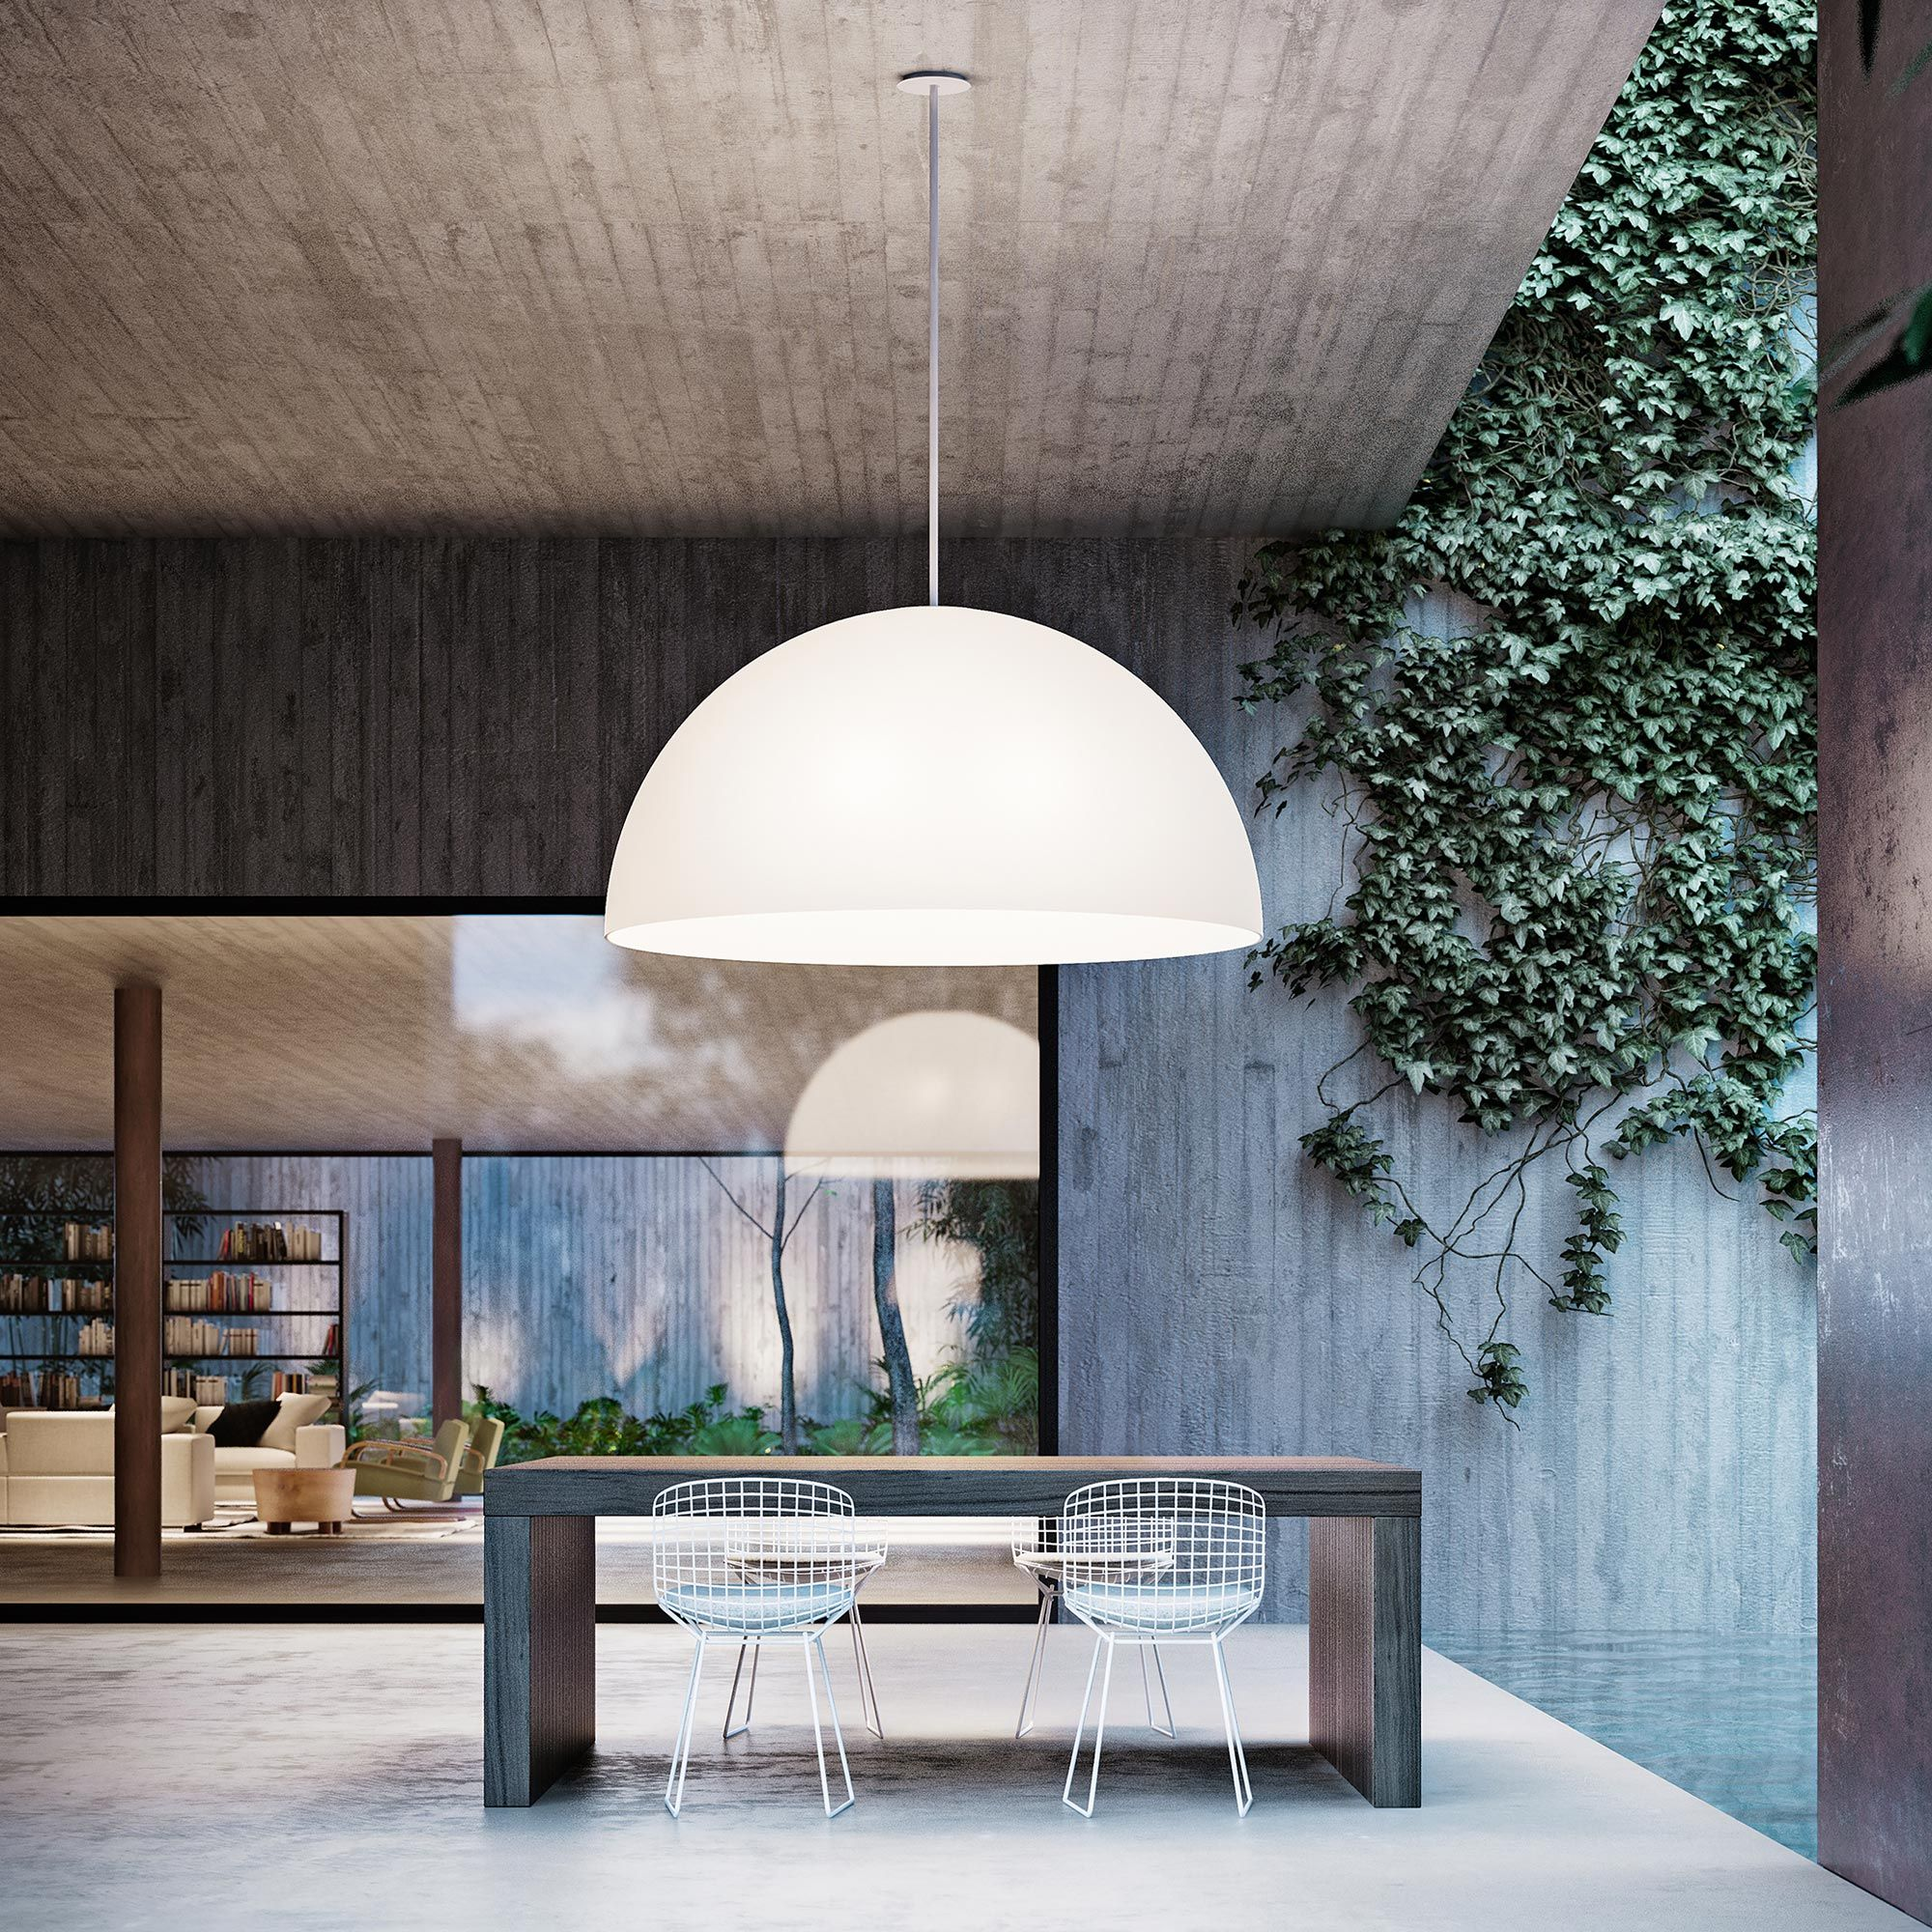 Extra-large Semispherical Shape For This Outdoor Hanging